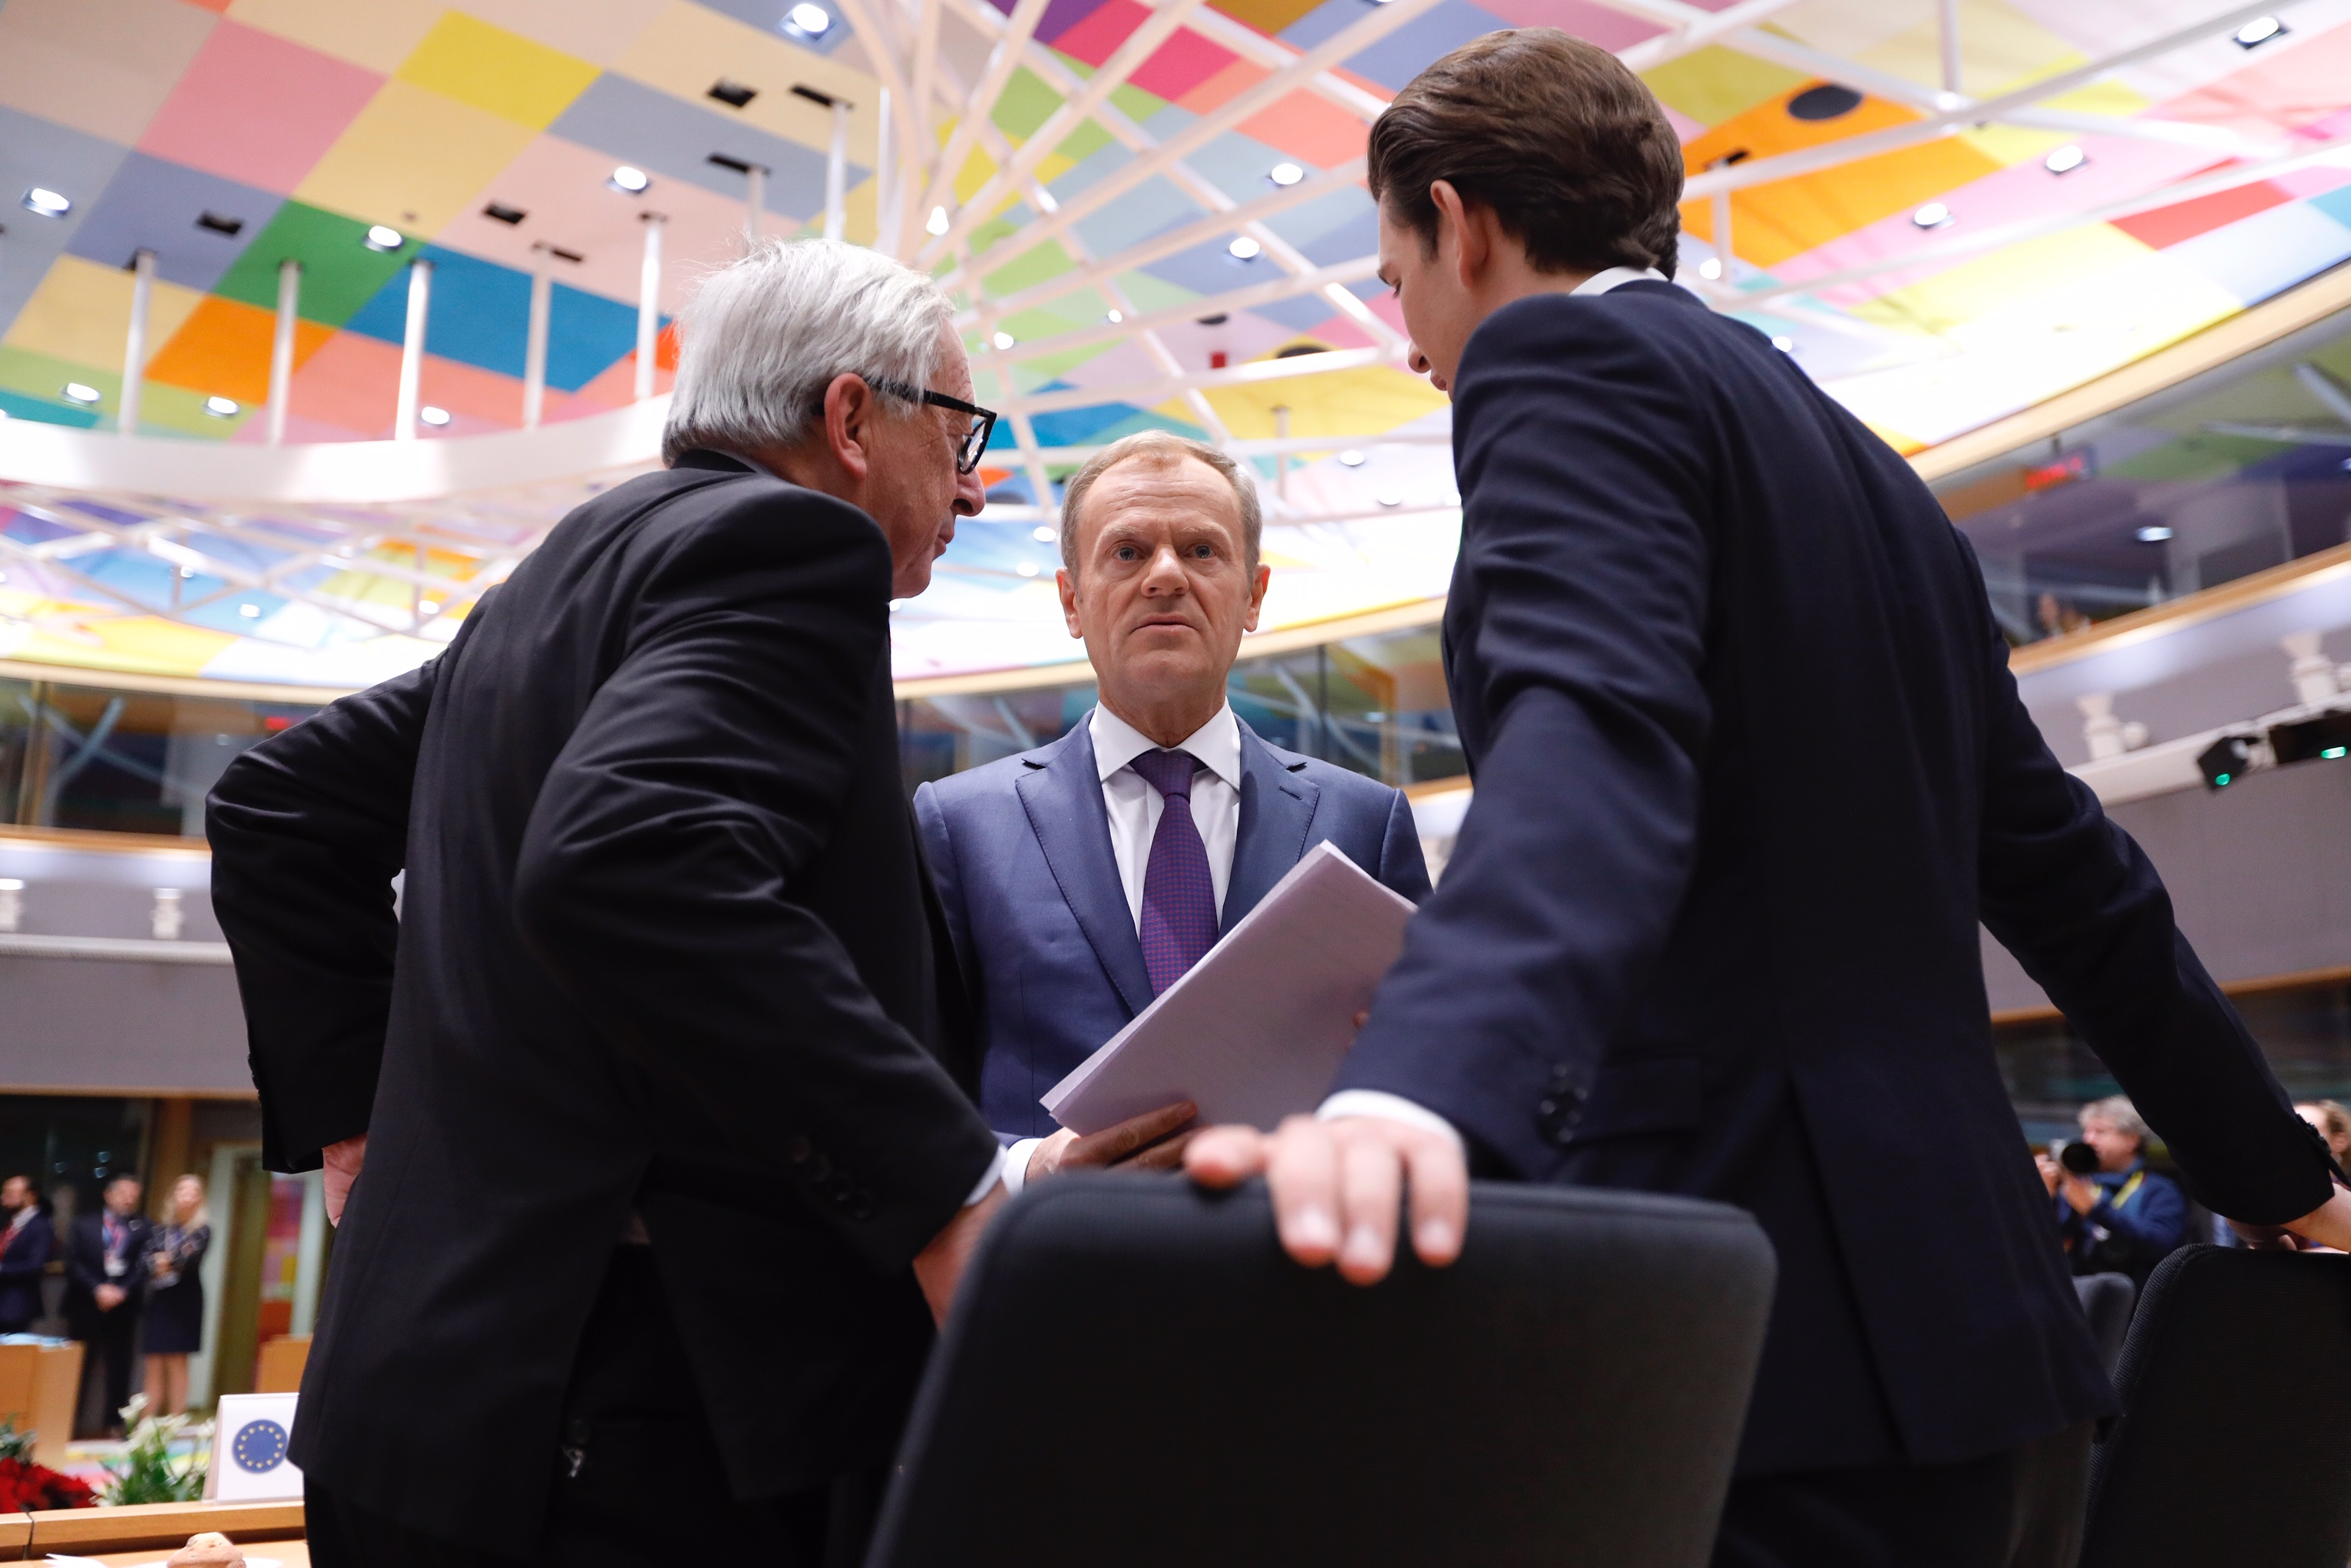 European Union leaders pledge to work for untied, strong Europe